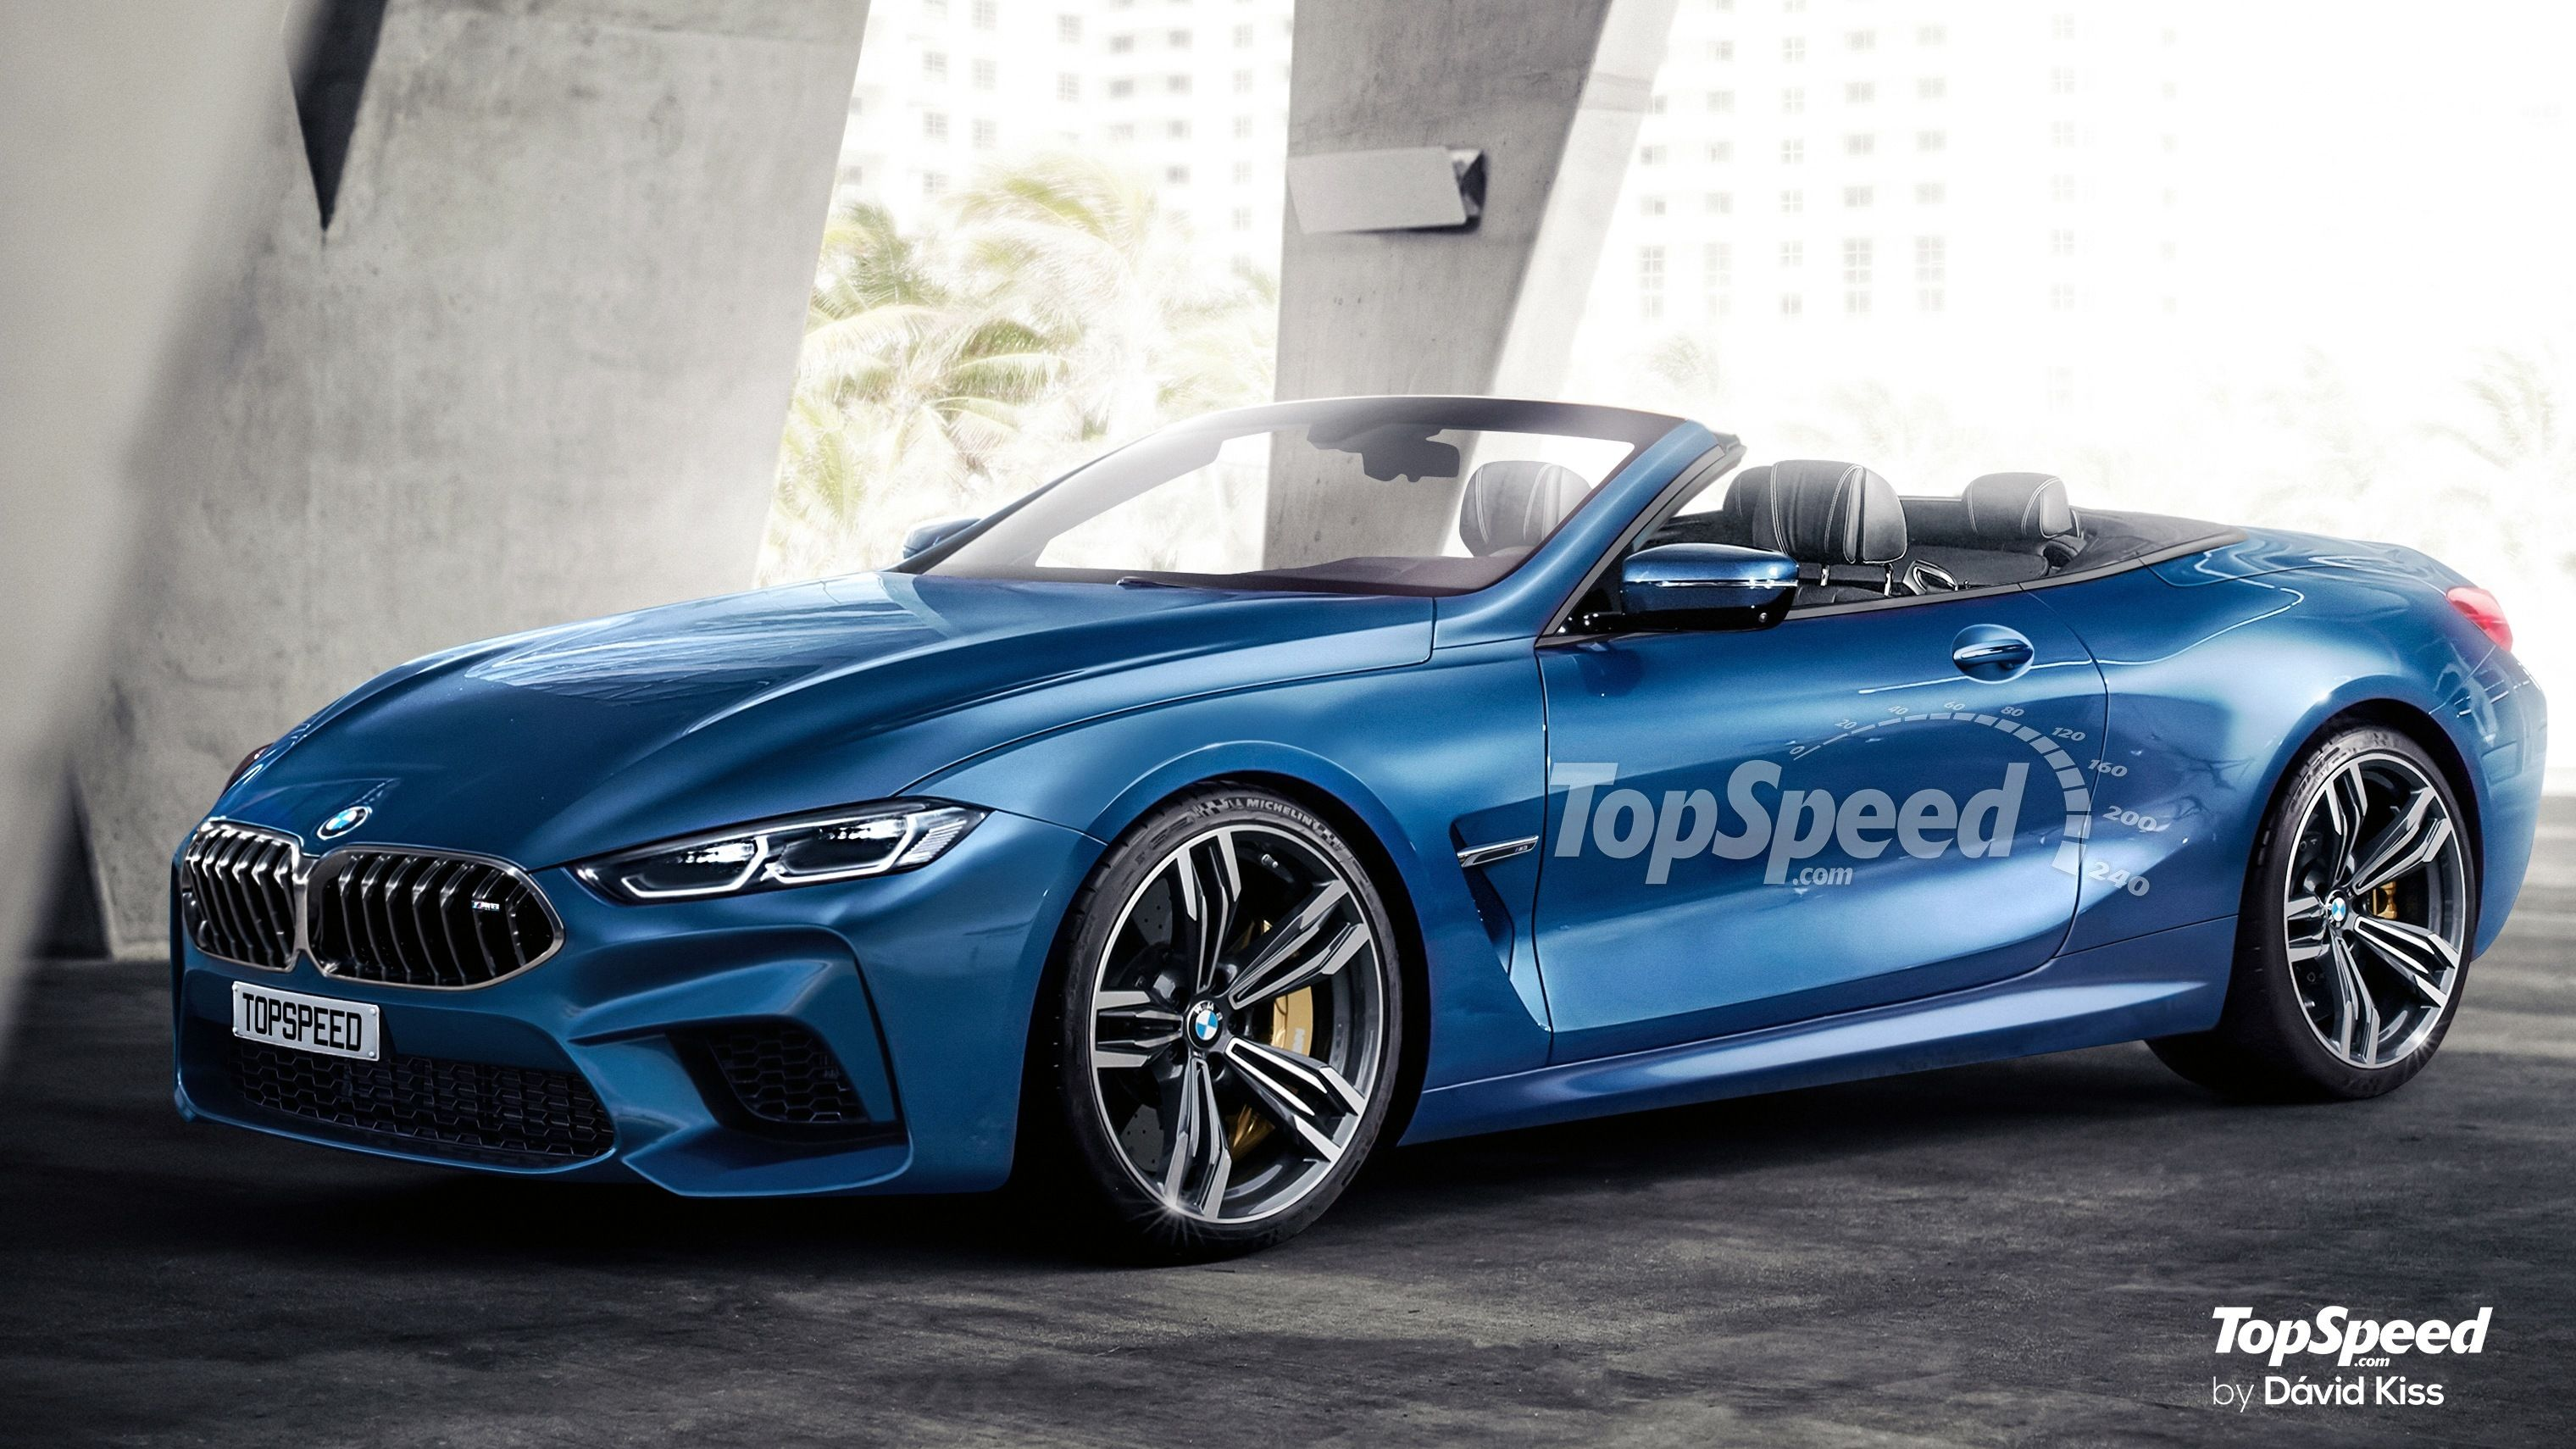 2019 Bmw M8 Price And Release Date With Images Bmw Bmw